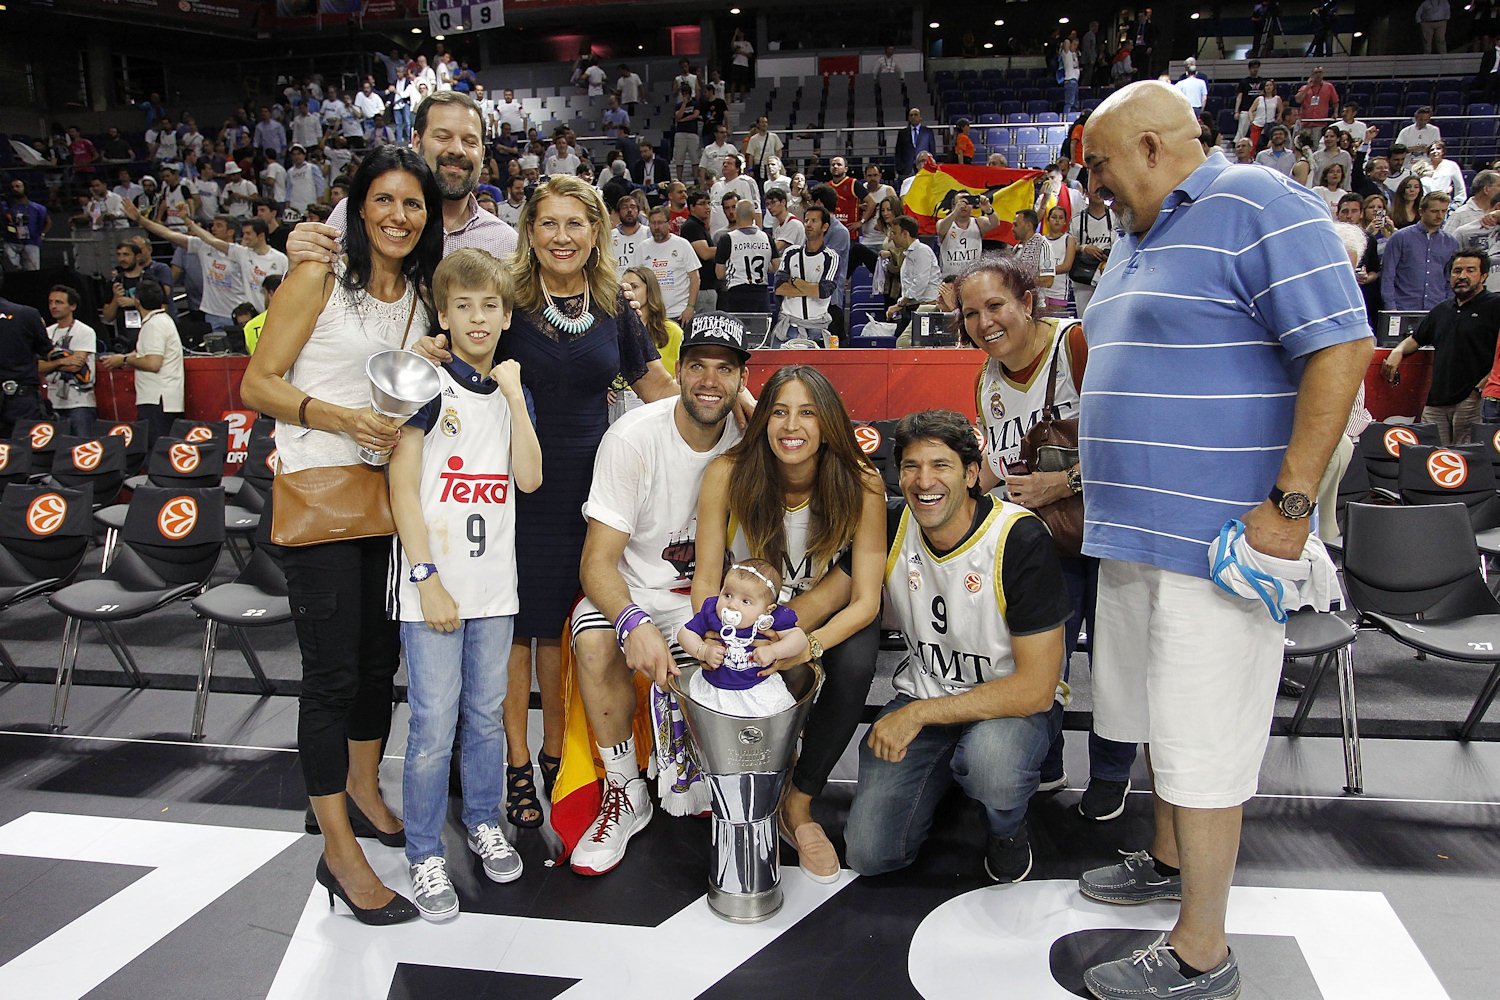 Felipe Reyes, celebrates with family - Real Madrid is the new champ Euroleague 2014-15 - Final Four Madrid 2015 - EB14